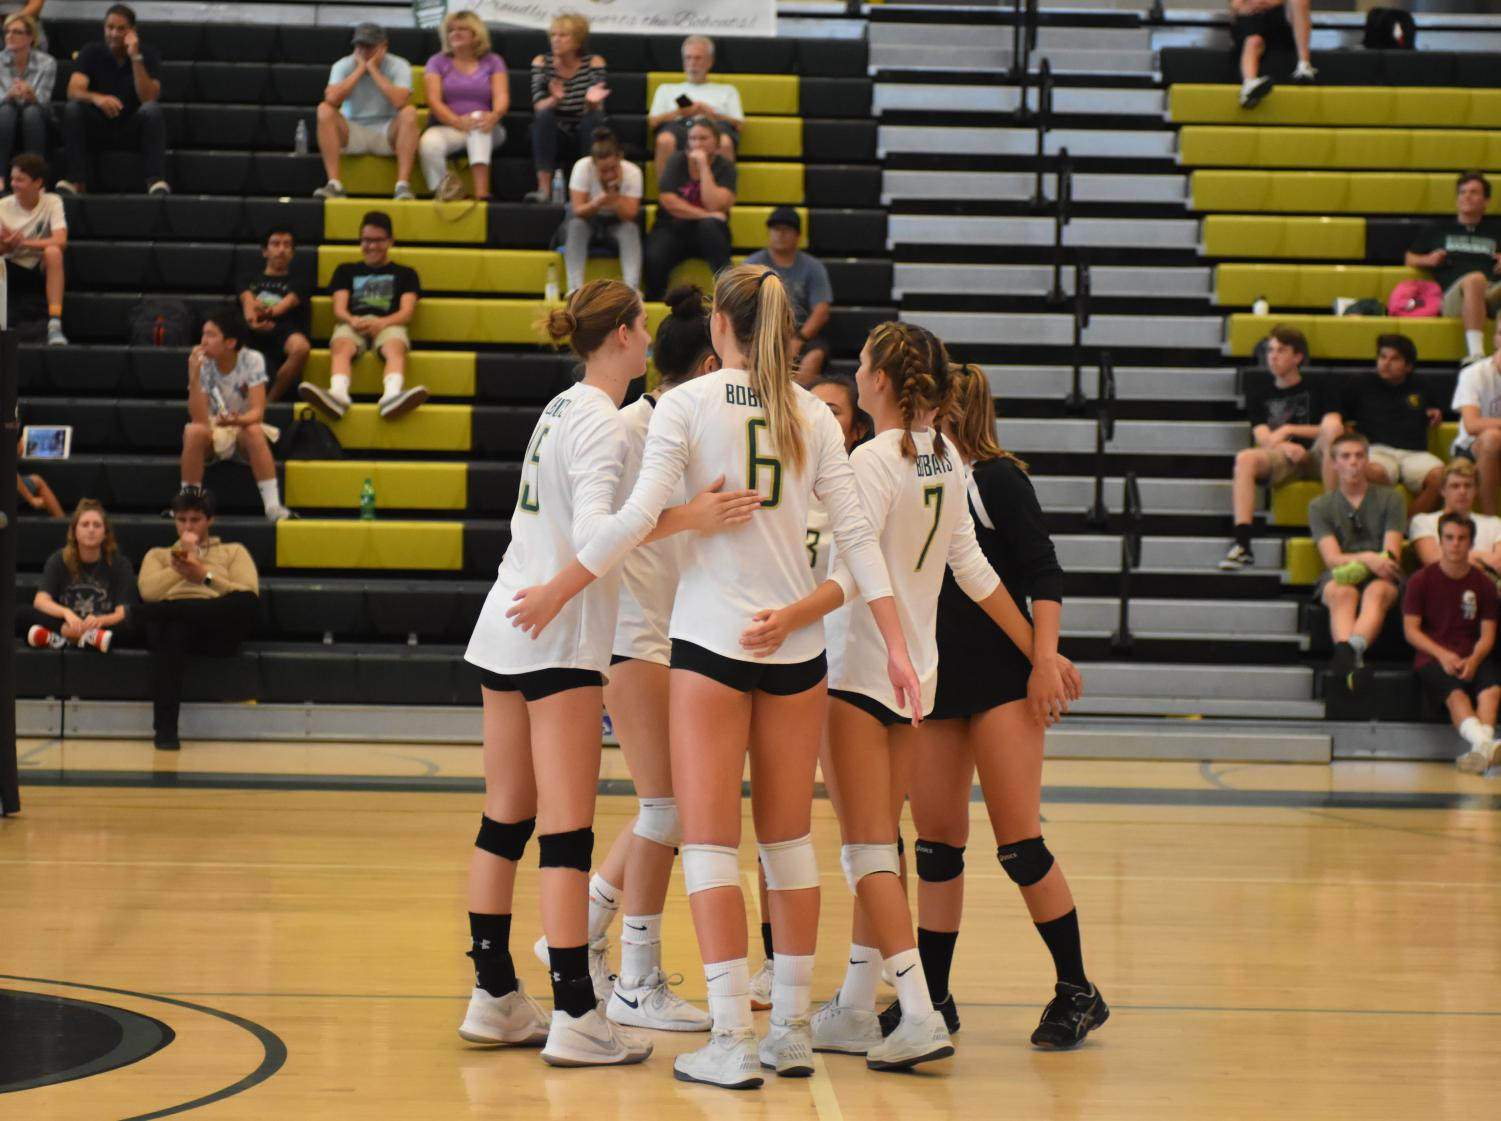 The+girls+varsity+volleyball+team+huddles+in+the+middle+of+the+court+to+show+their+mutual+support+to+one+another+during+their+game+against+Helix+Charter+High+School.+Their+next+home+game+will+take+place+on+Wednesday%2C+Sept.+twelfth%2C+against+Mission+Hills+High+School.